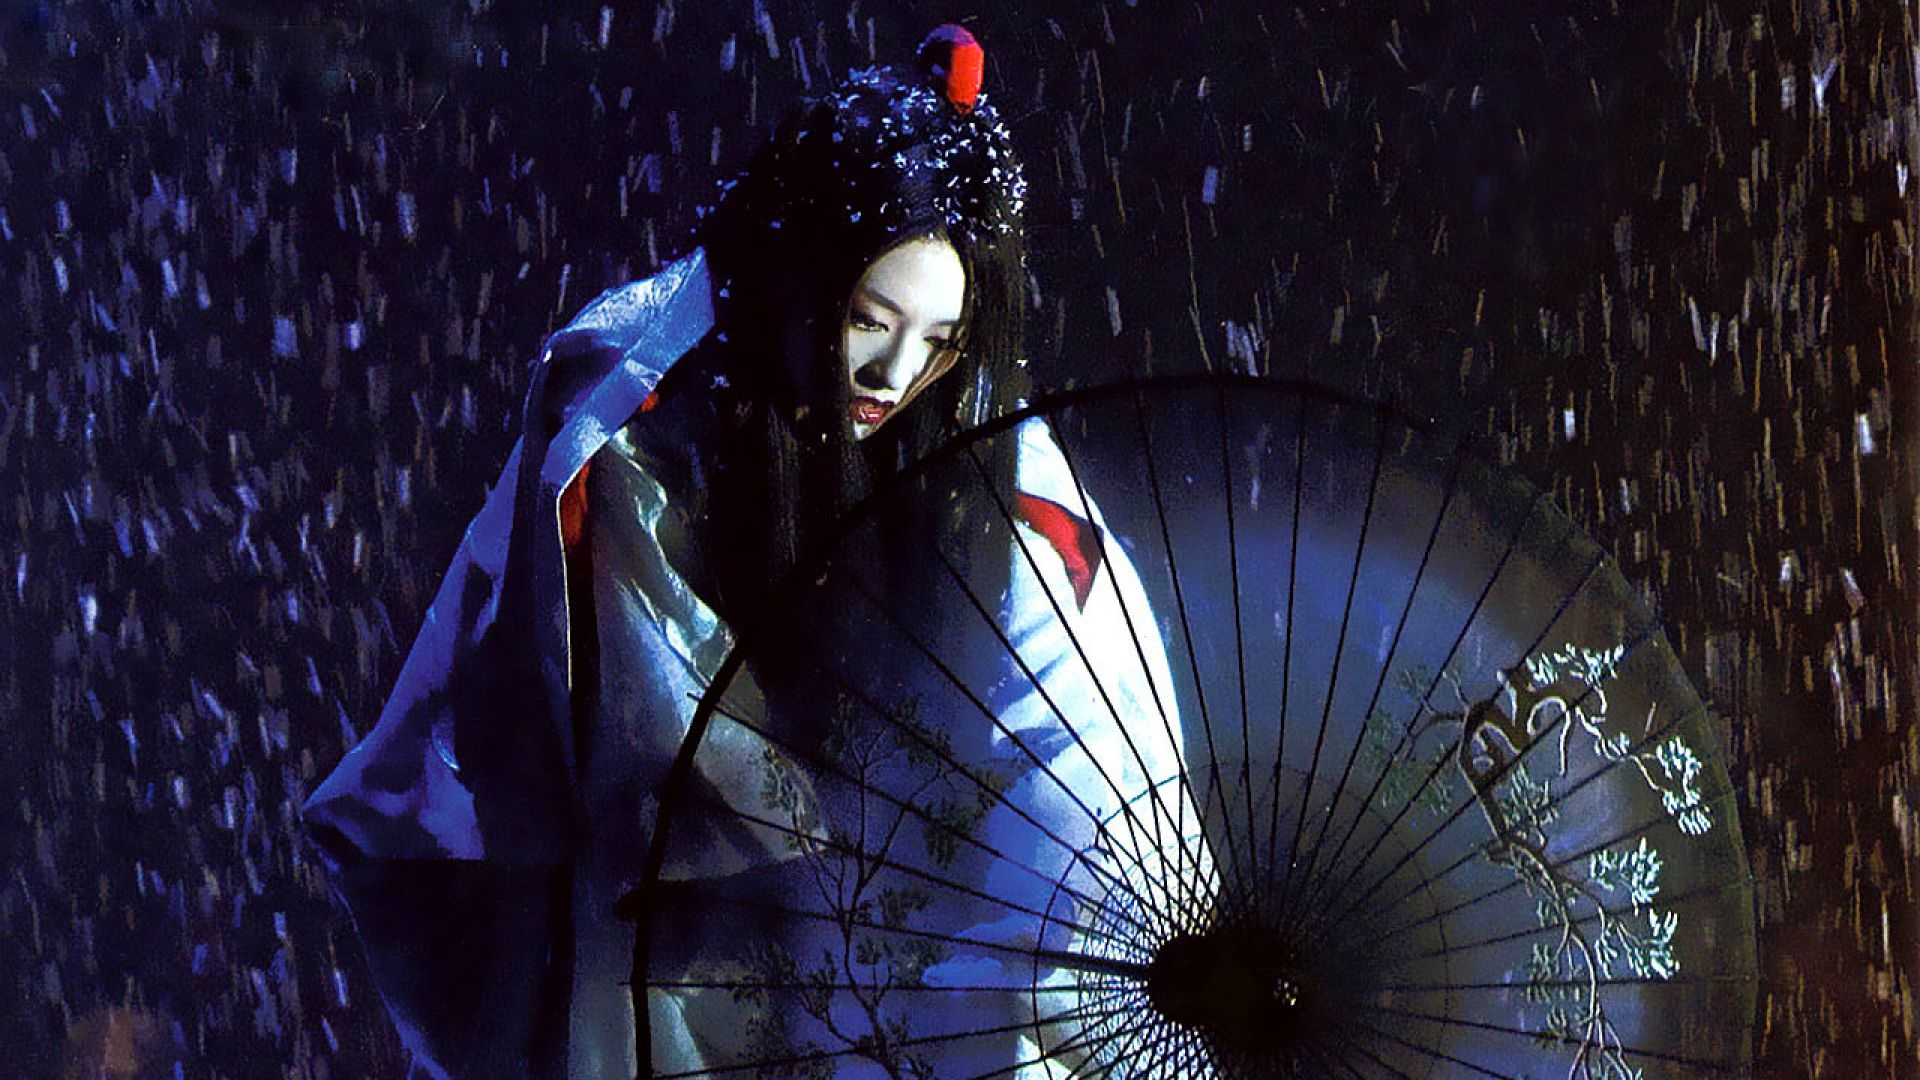 Music for memoirs of a geisha